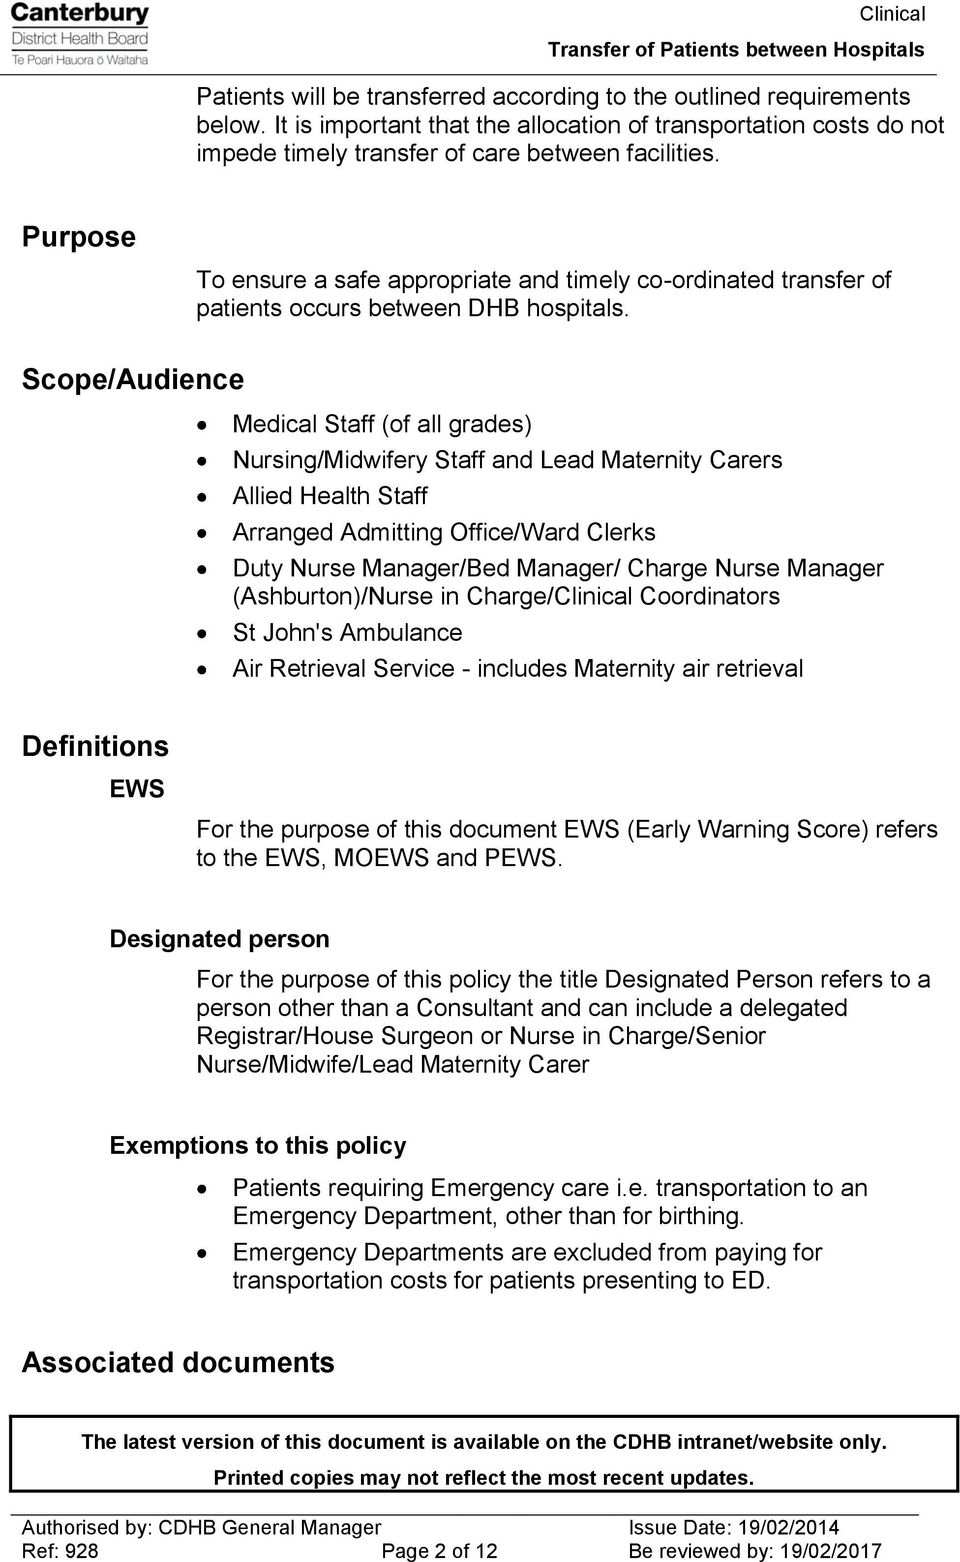 Scope/Audience Medical Staff (of all grades) Nursing/Midwifery Staff and Lead Maternity Carers Allied Health Staff Arranged Admitting Office/Ward Clerks Duty Nurse Manager/Bed Manager/ Charge Nurse